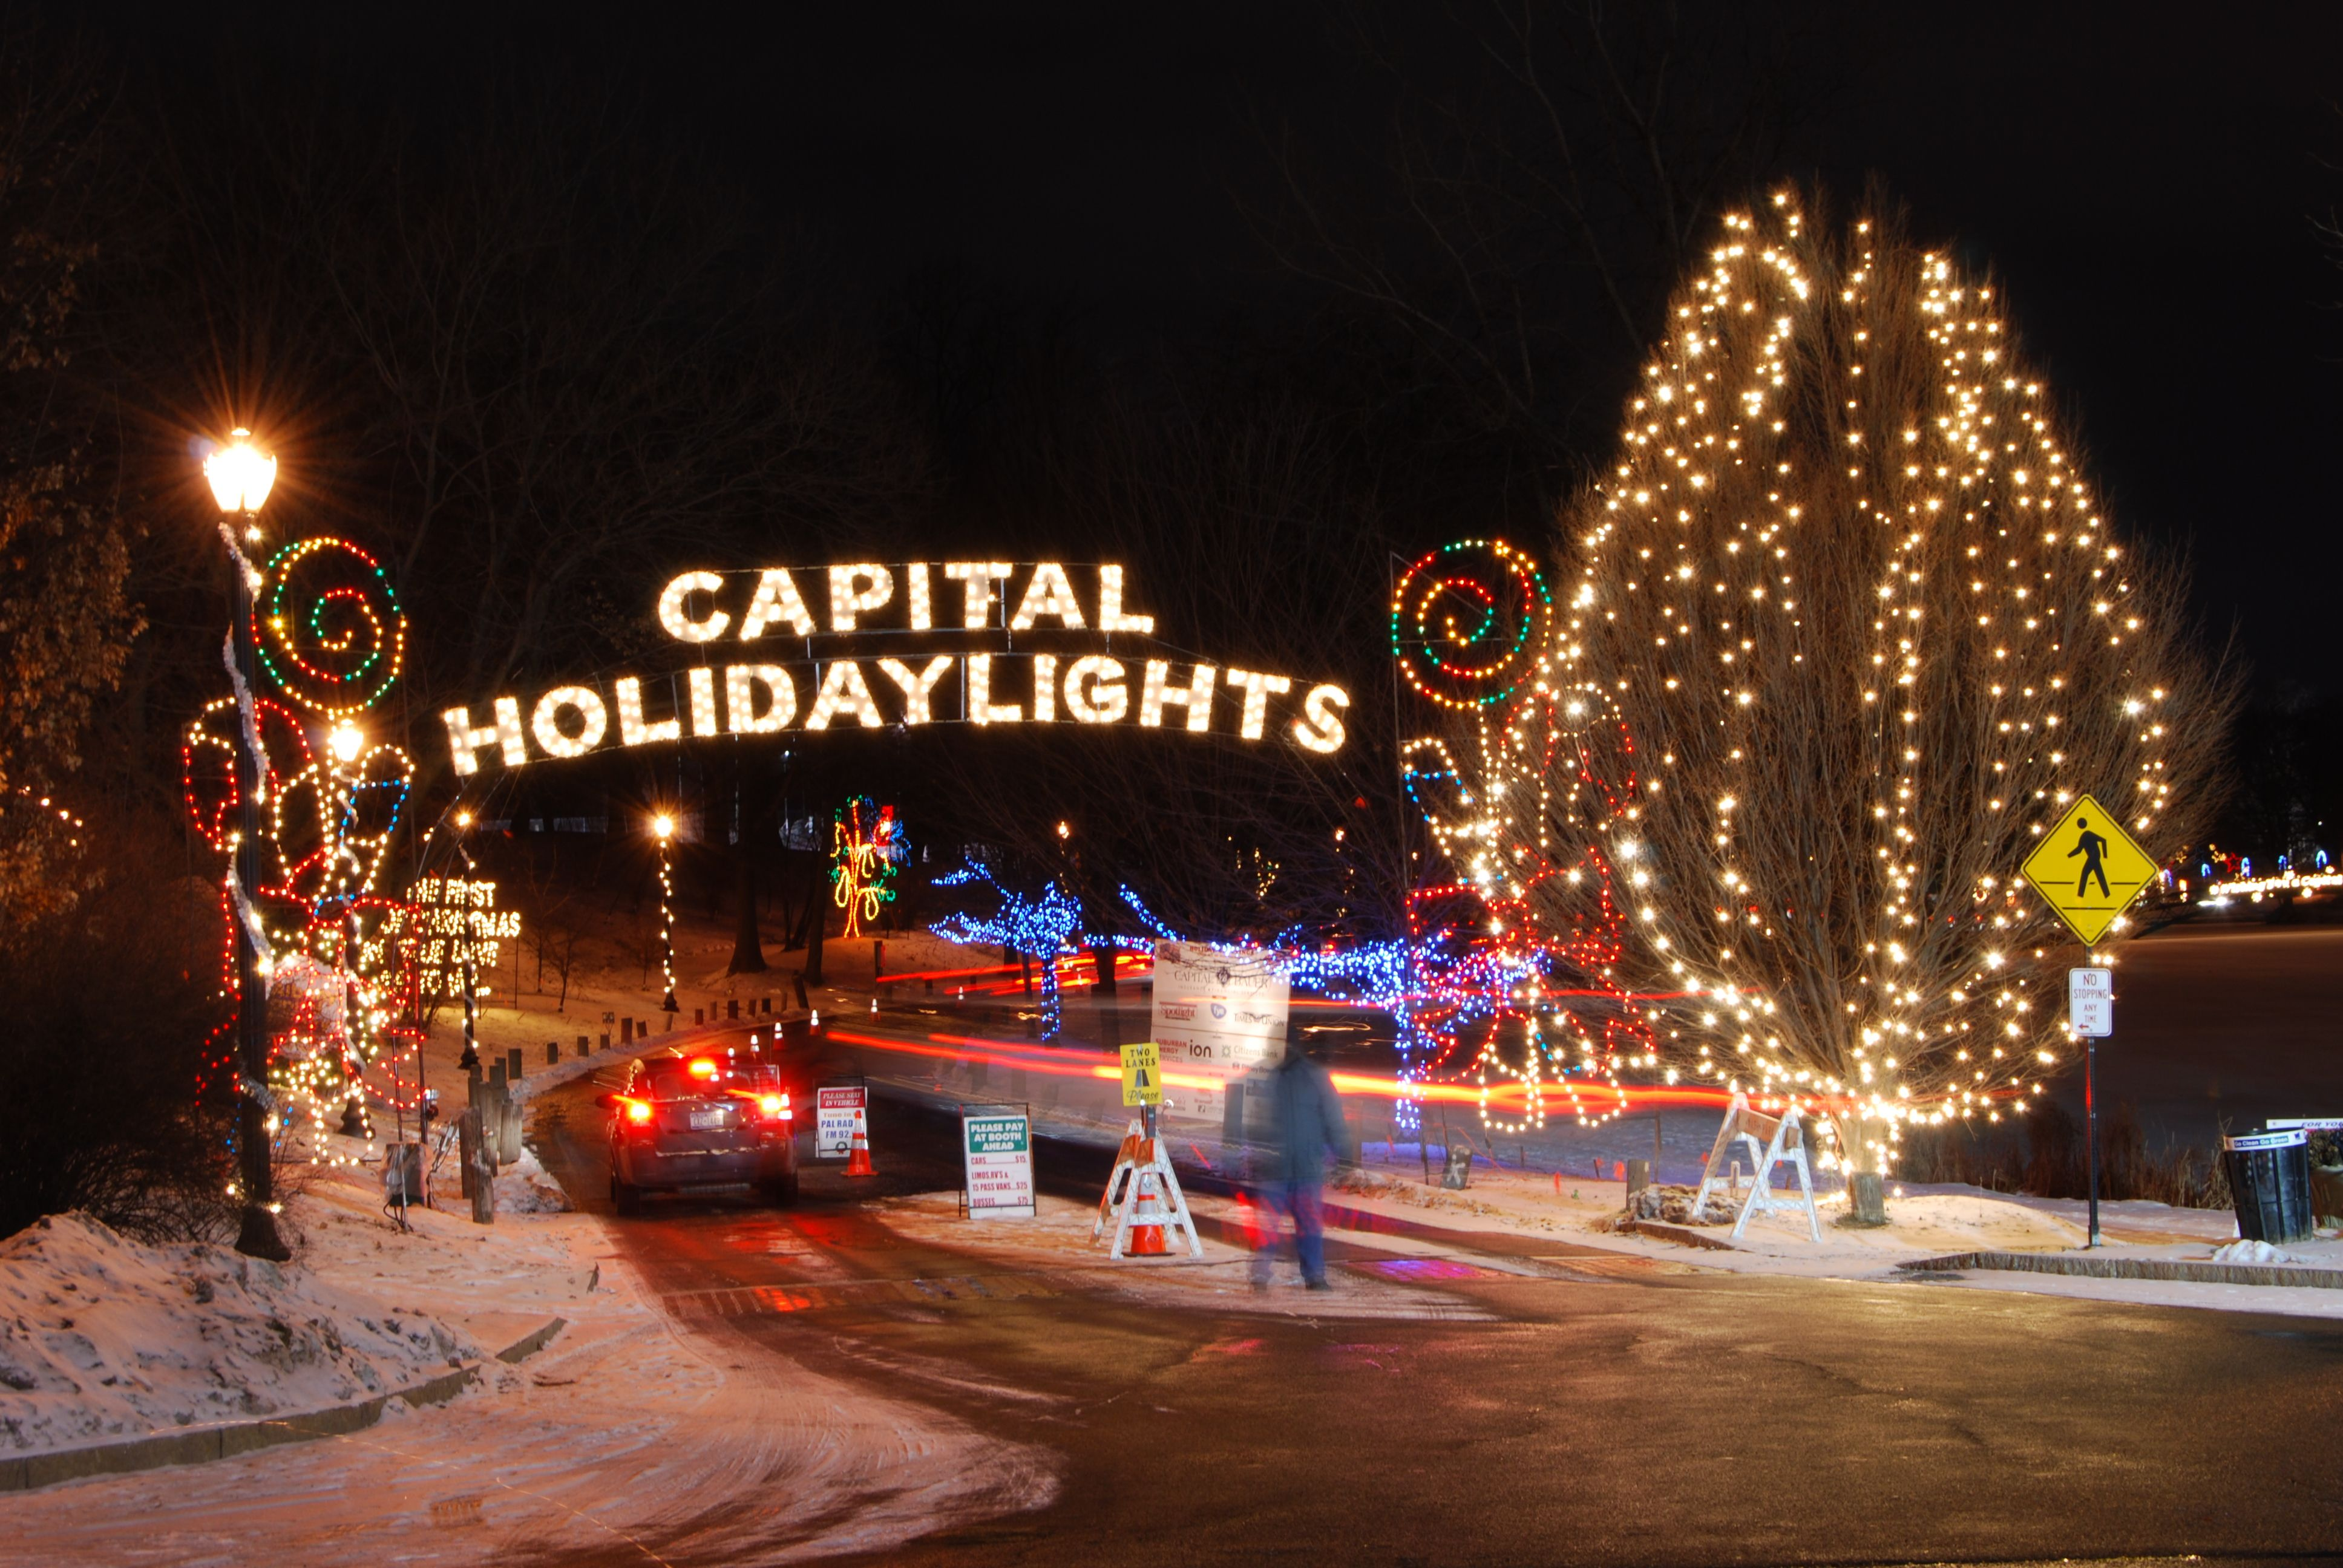 Christmas Lights In Washington Park Albanyny 2020 Albany Police Athletic League, Albany, NY: Capital Holiday Lights